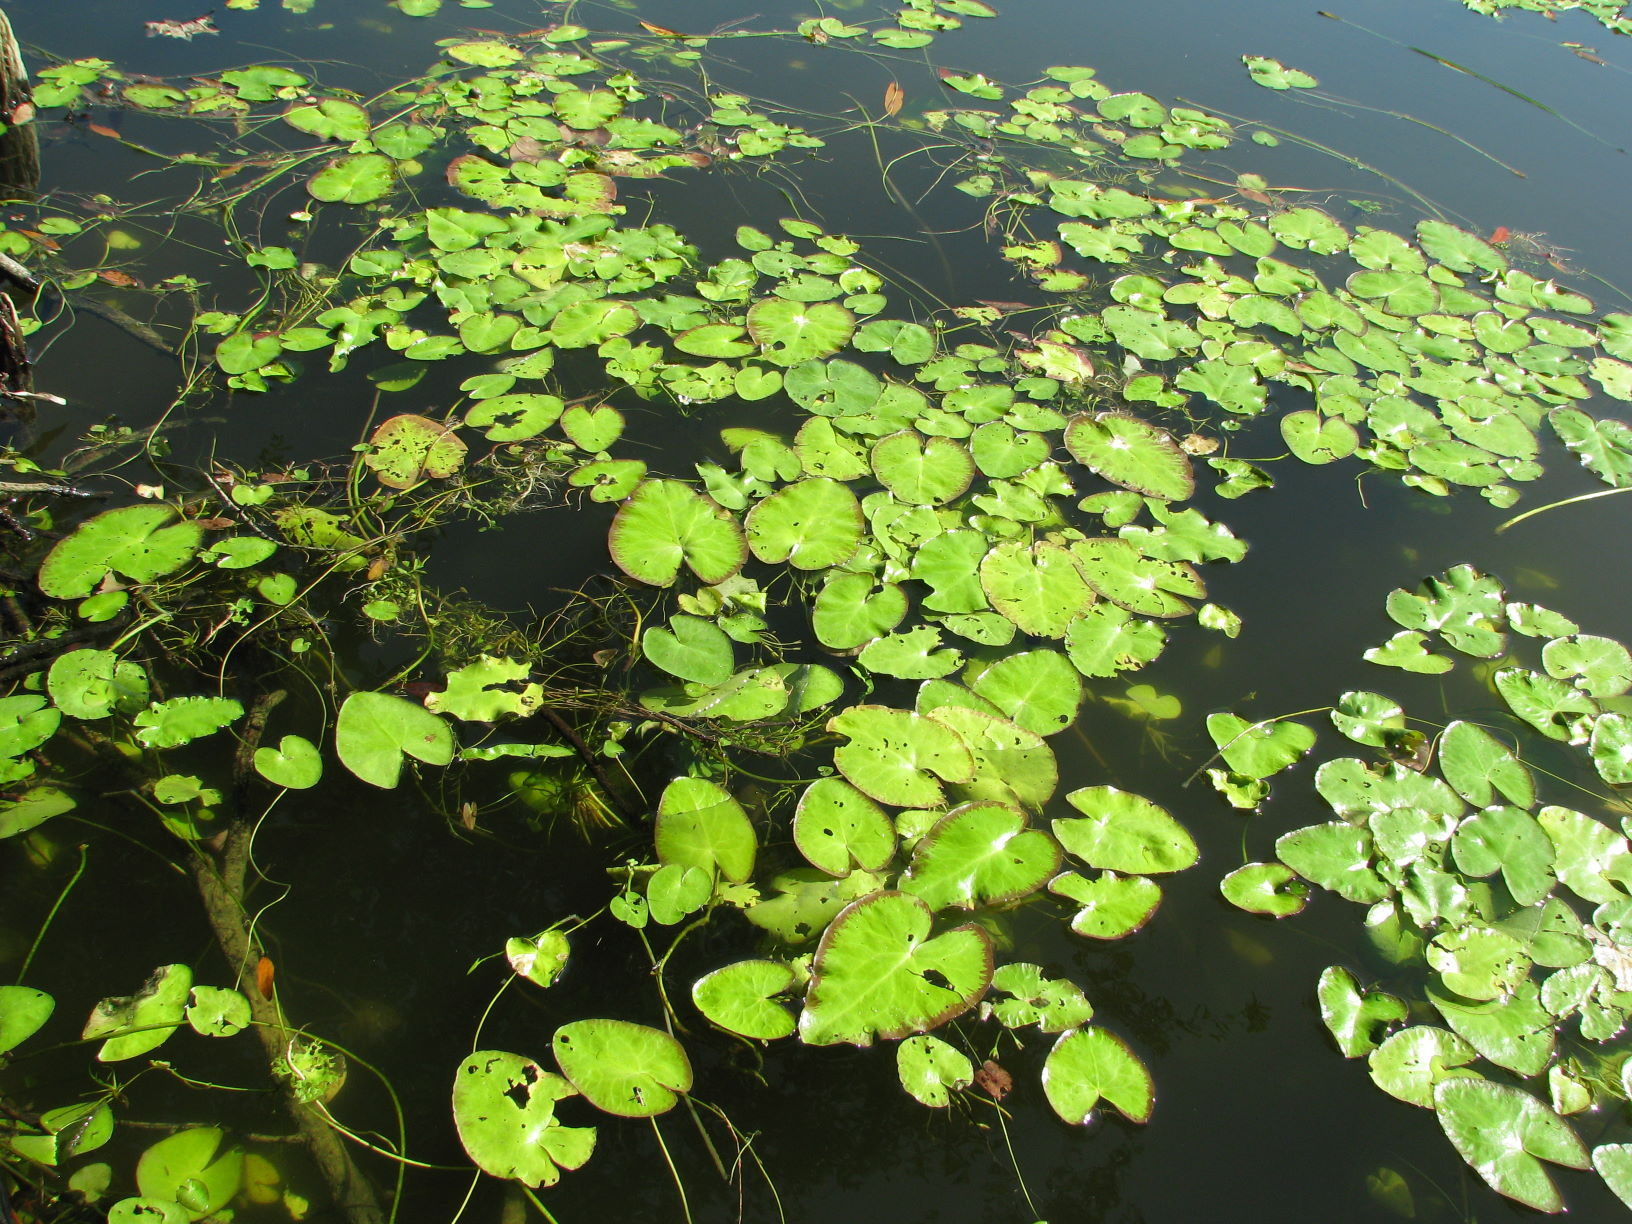 Floating aquatic plants clemson university south carolina for Using pond water for plants